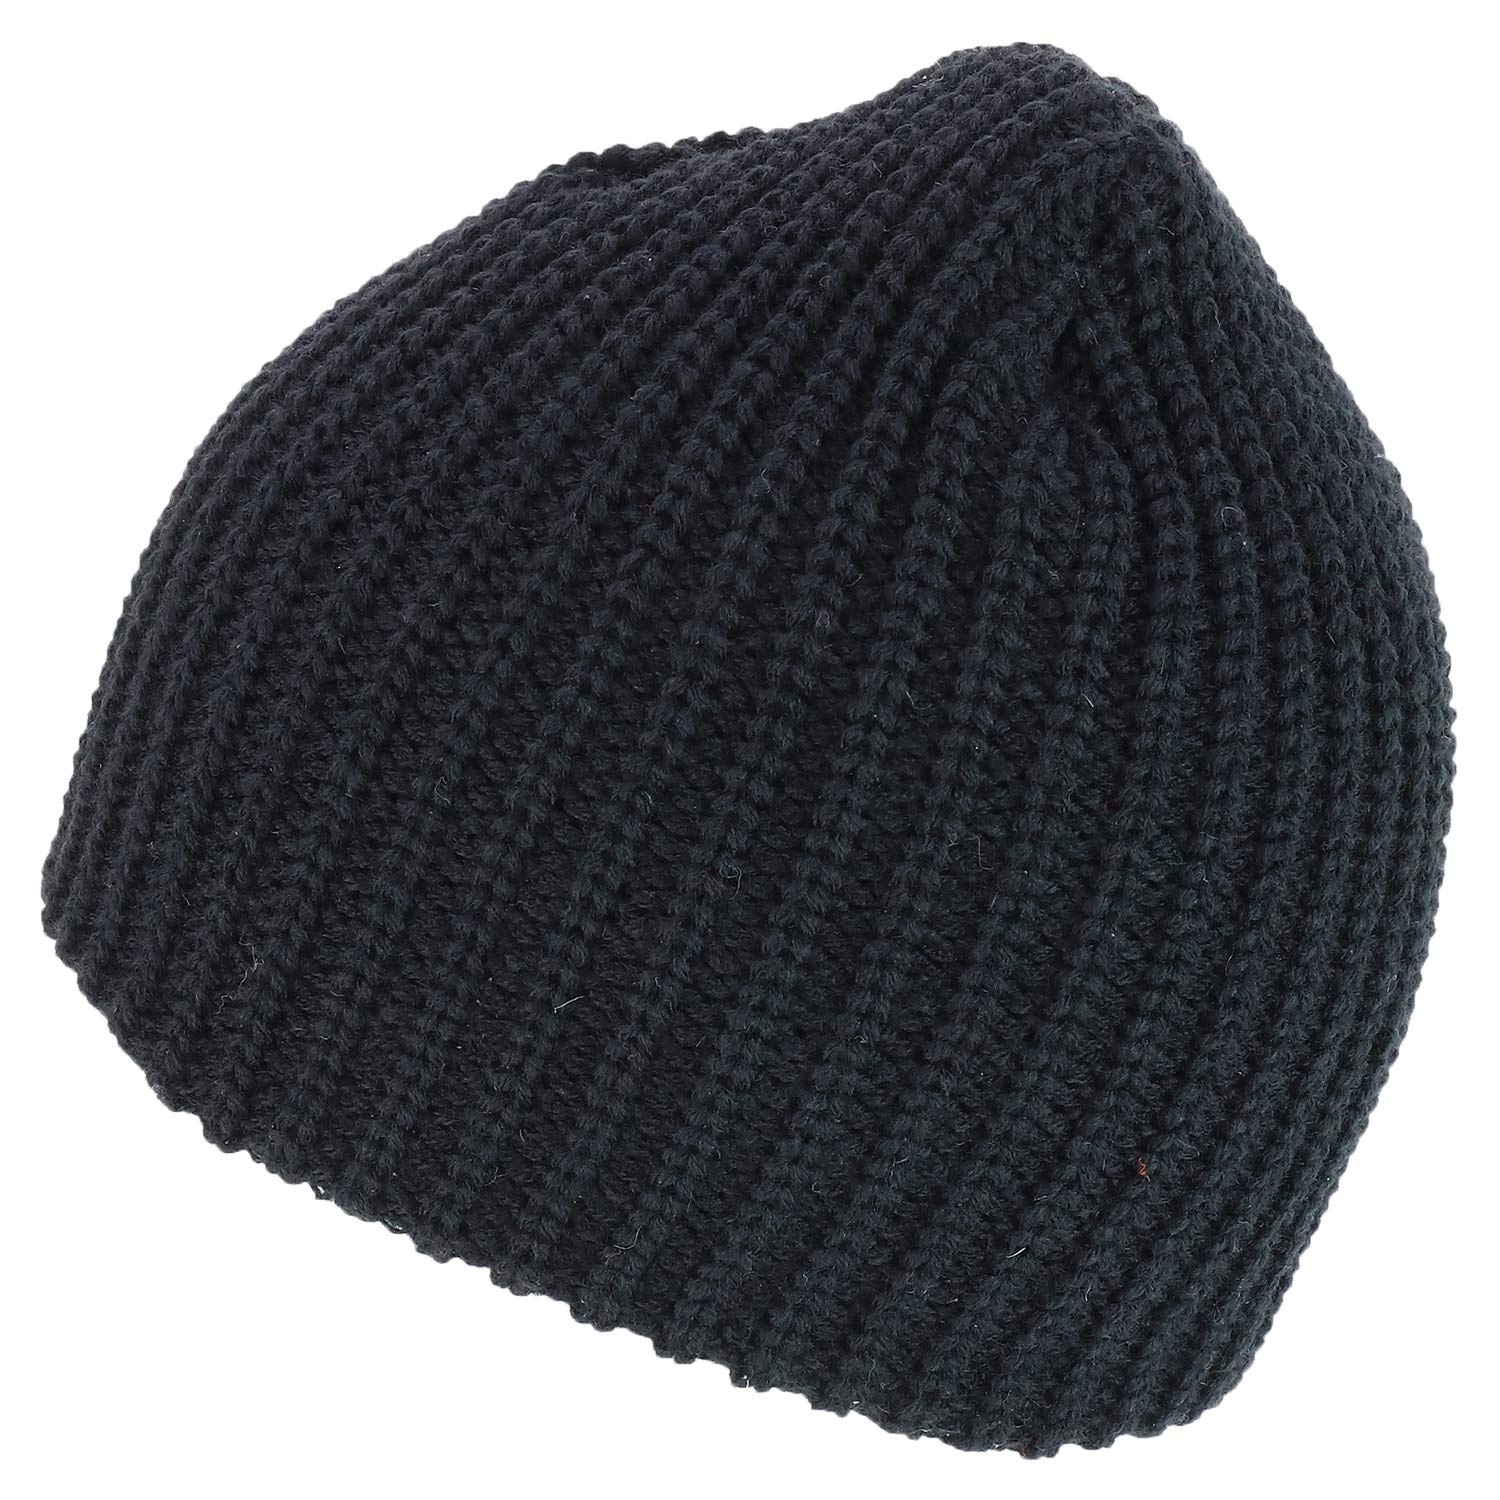 Armycrew Thick Ribbed Knit Winter Short Beanie 2 Pack